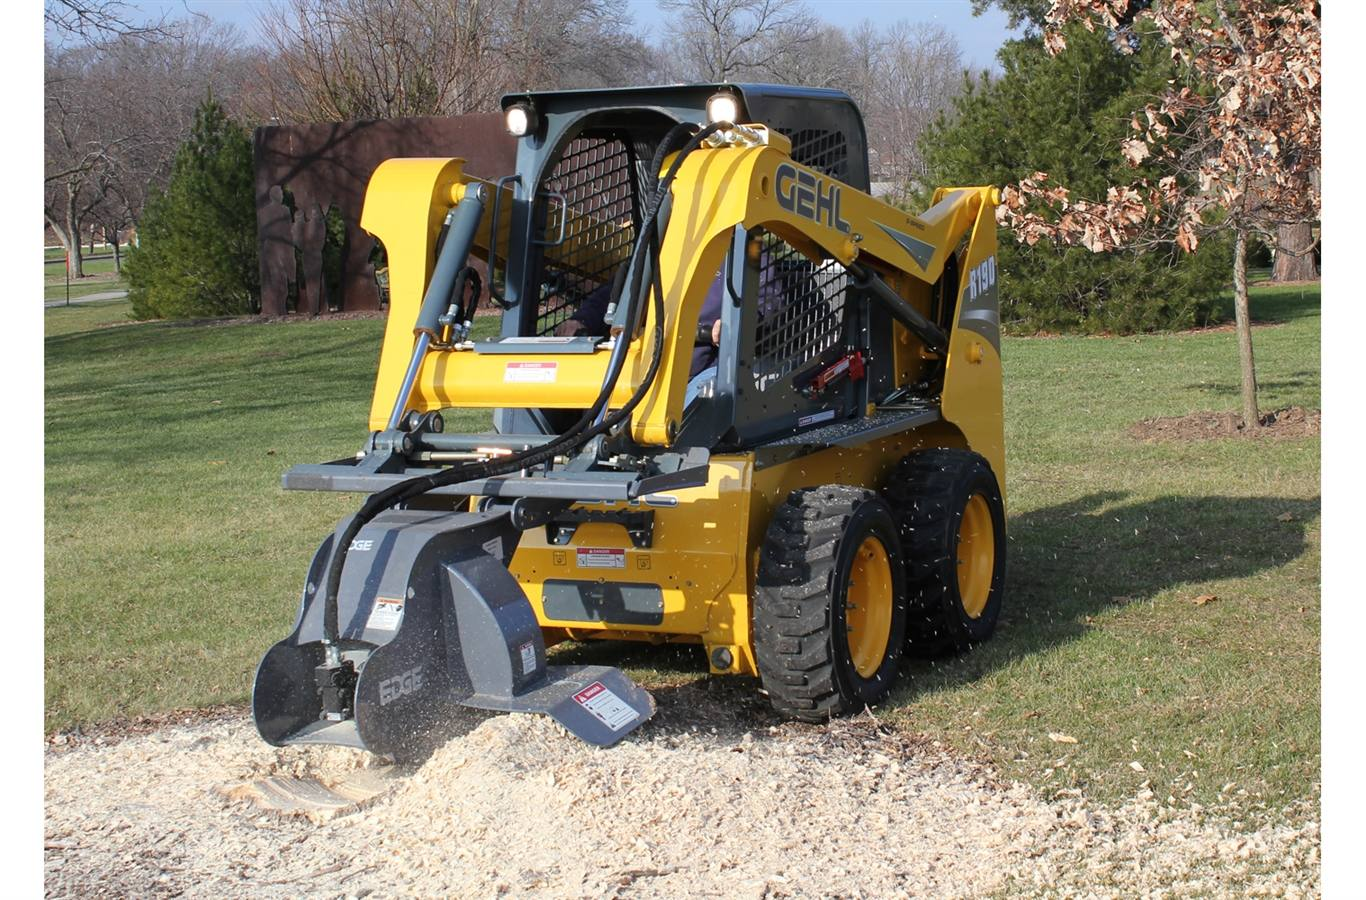 2018 Gehl R190 Skid Loader for sale in Chili, WI  Chili